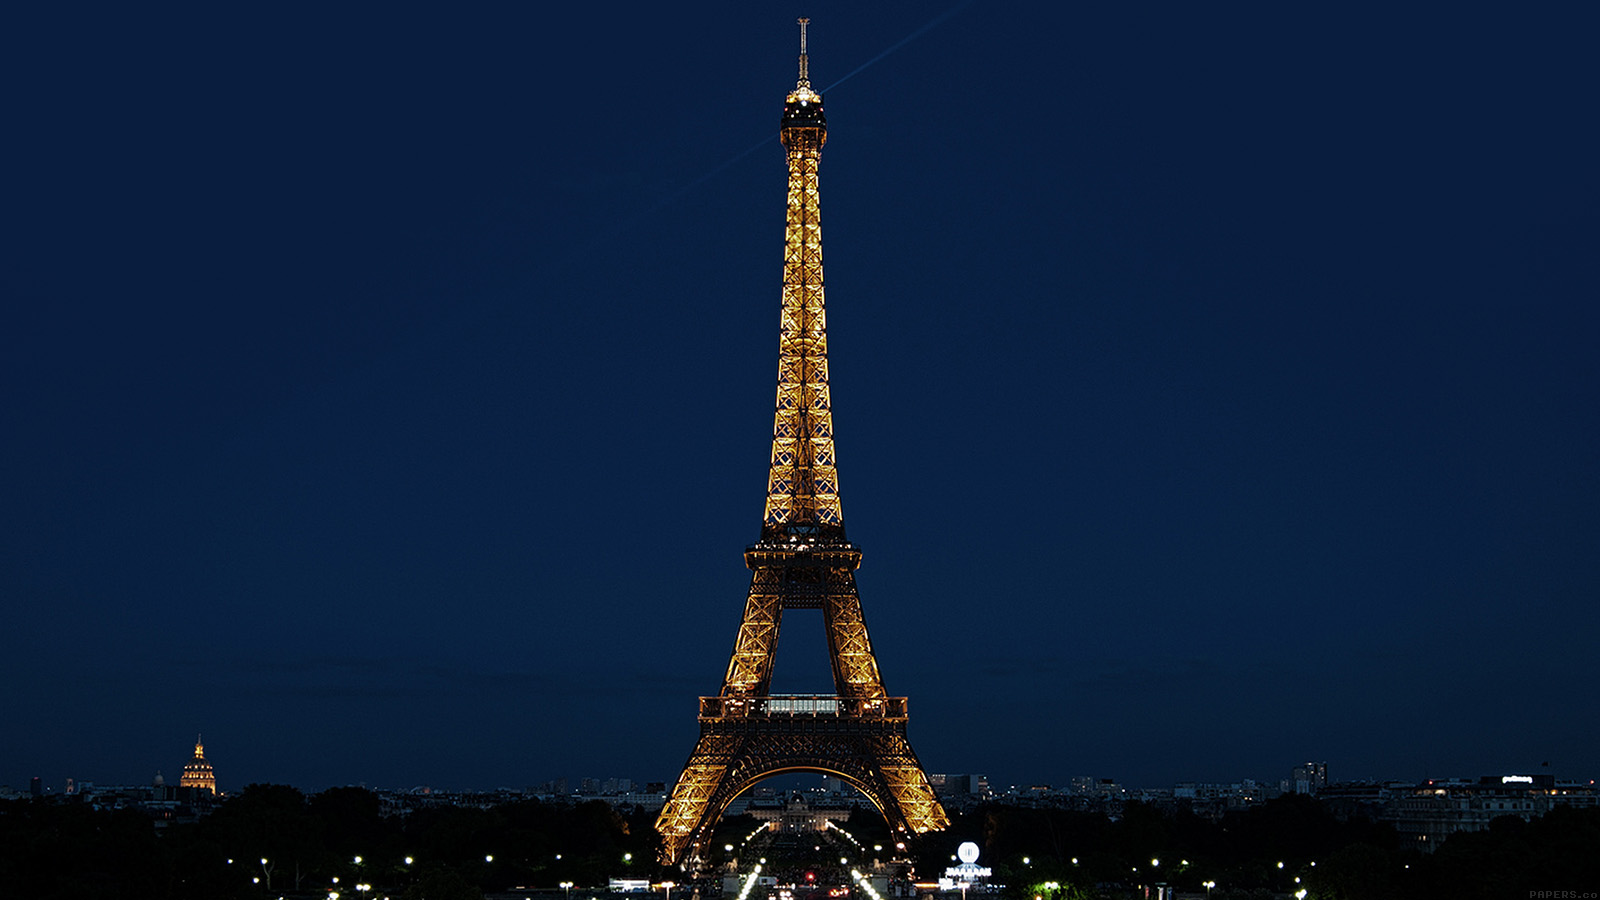 Hd Christmas Wallpaper Cute Ml77 Paris Night France City Eiffel Tower Papers Co